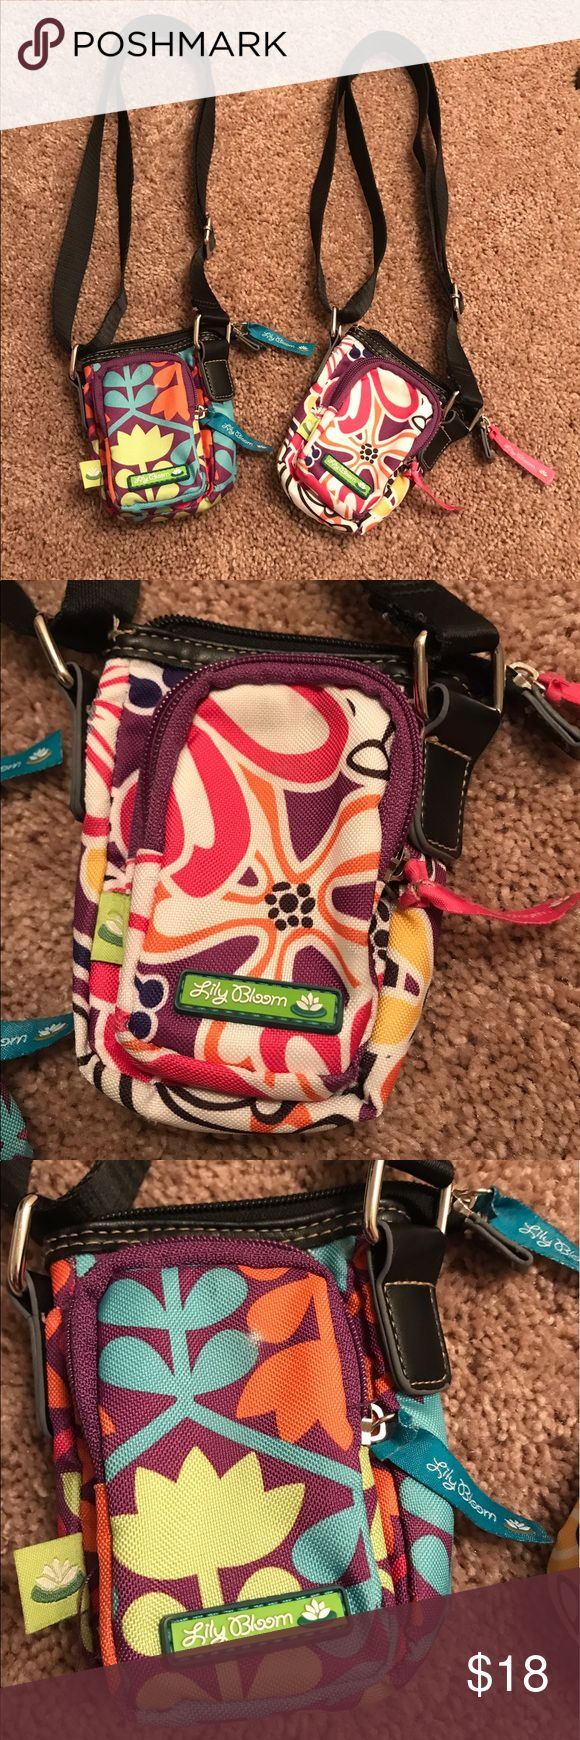 Lily bloom small cross body pouch purse Lily bloom cross body purse pouches. Three pockets, 2 with zippers. EXCELLENT LIKE NEW CONDITION. Could hold cellphone, money, cards, lipsticks. Anything really! The listing is for both purses! What a deal 😀 lily bloom Bags Crossbody Bags